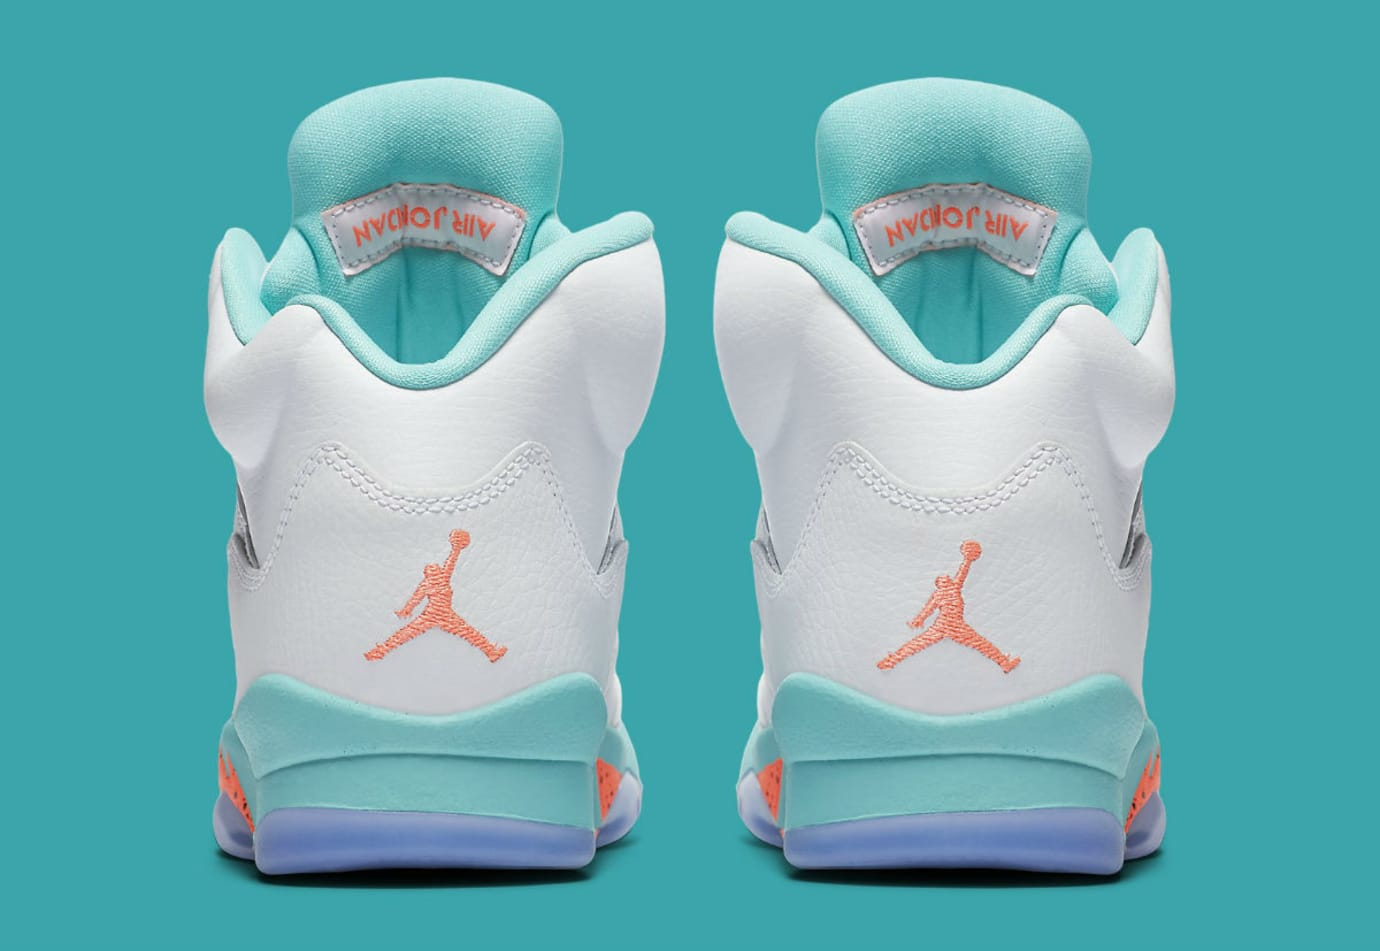 newest collection 58531 53b26 Image via Nike Air Jordan 5 V GS White Crimson Pulse Light Aqua Release  Date 440892-100 Heel